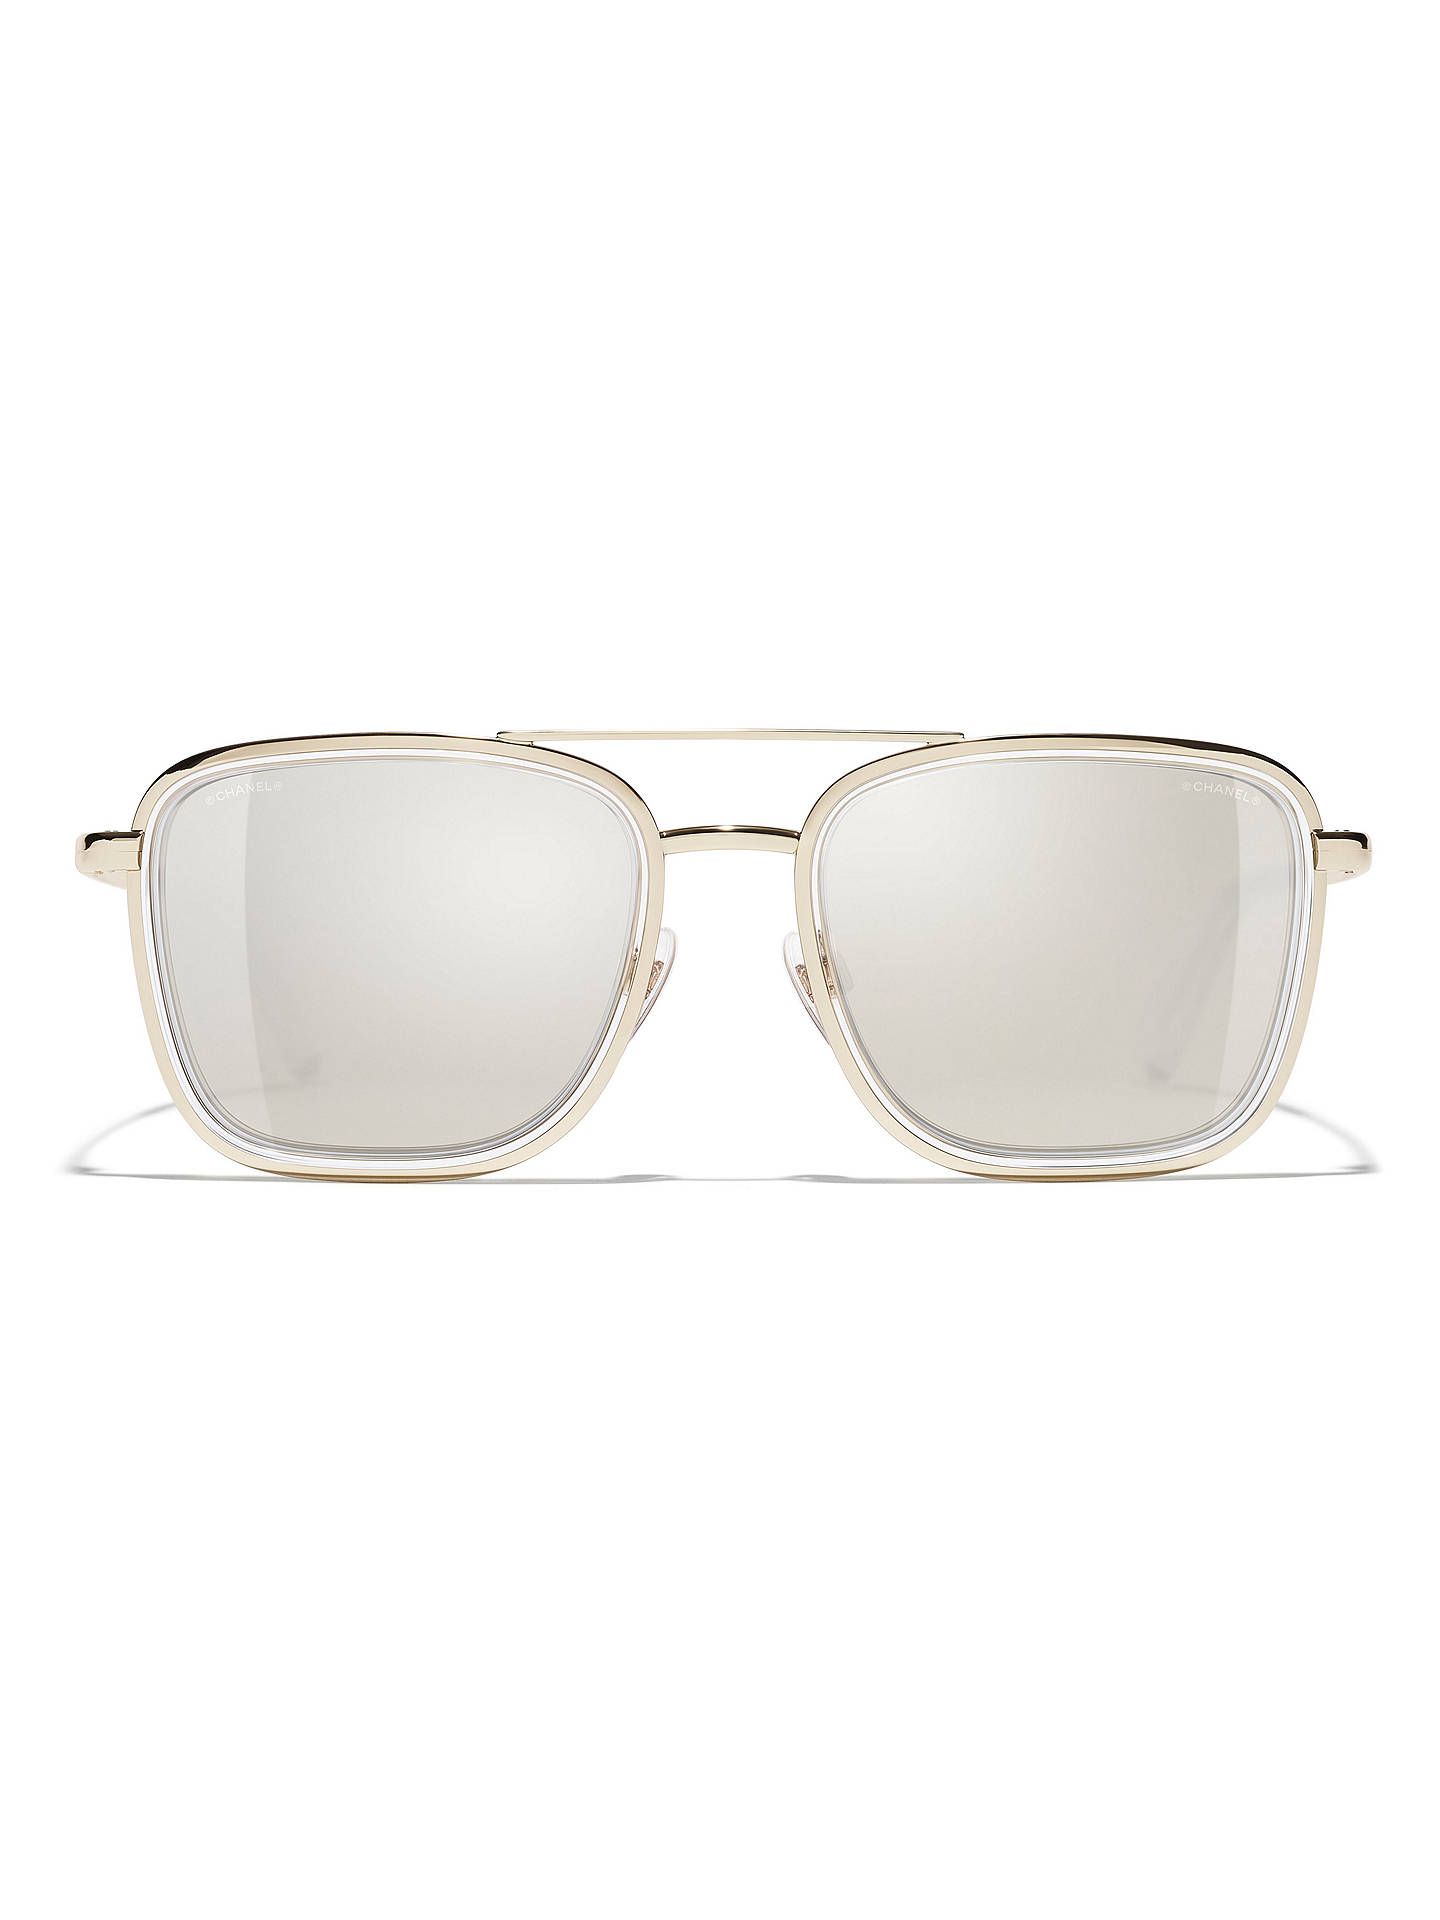 5e40fcc7a ... Buy CHANEL Square Sunglasses CH4241 Light Gold/Mirror Gold Online at  johnlewis.com ...